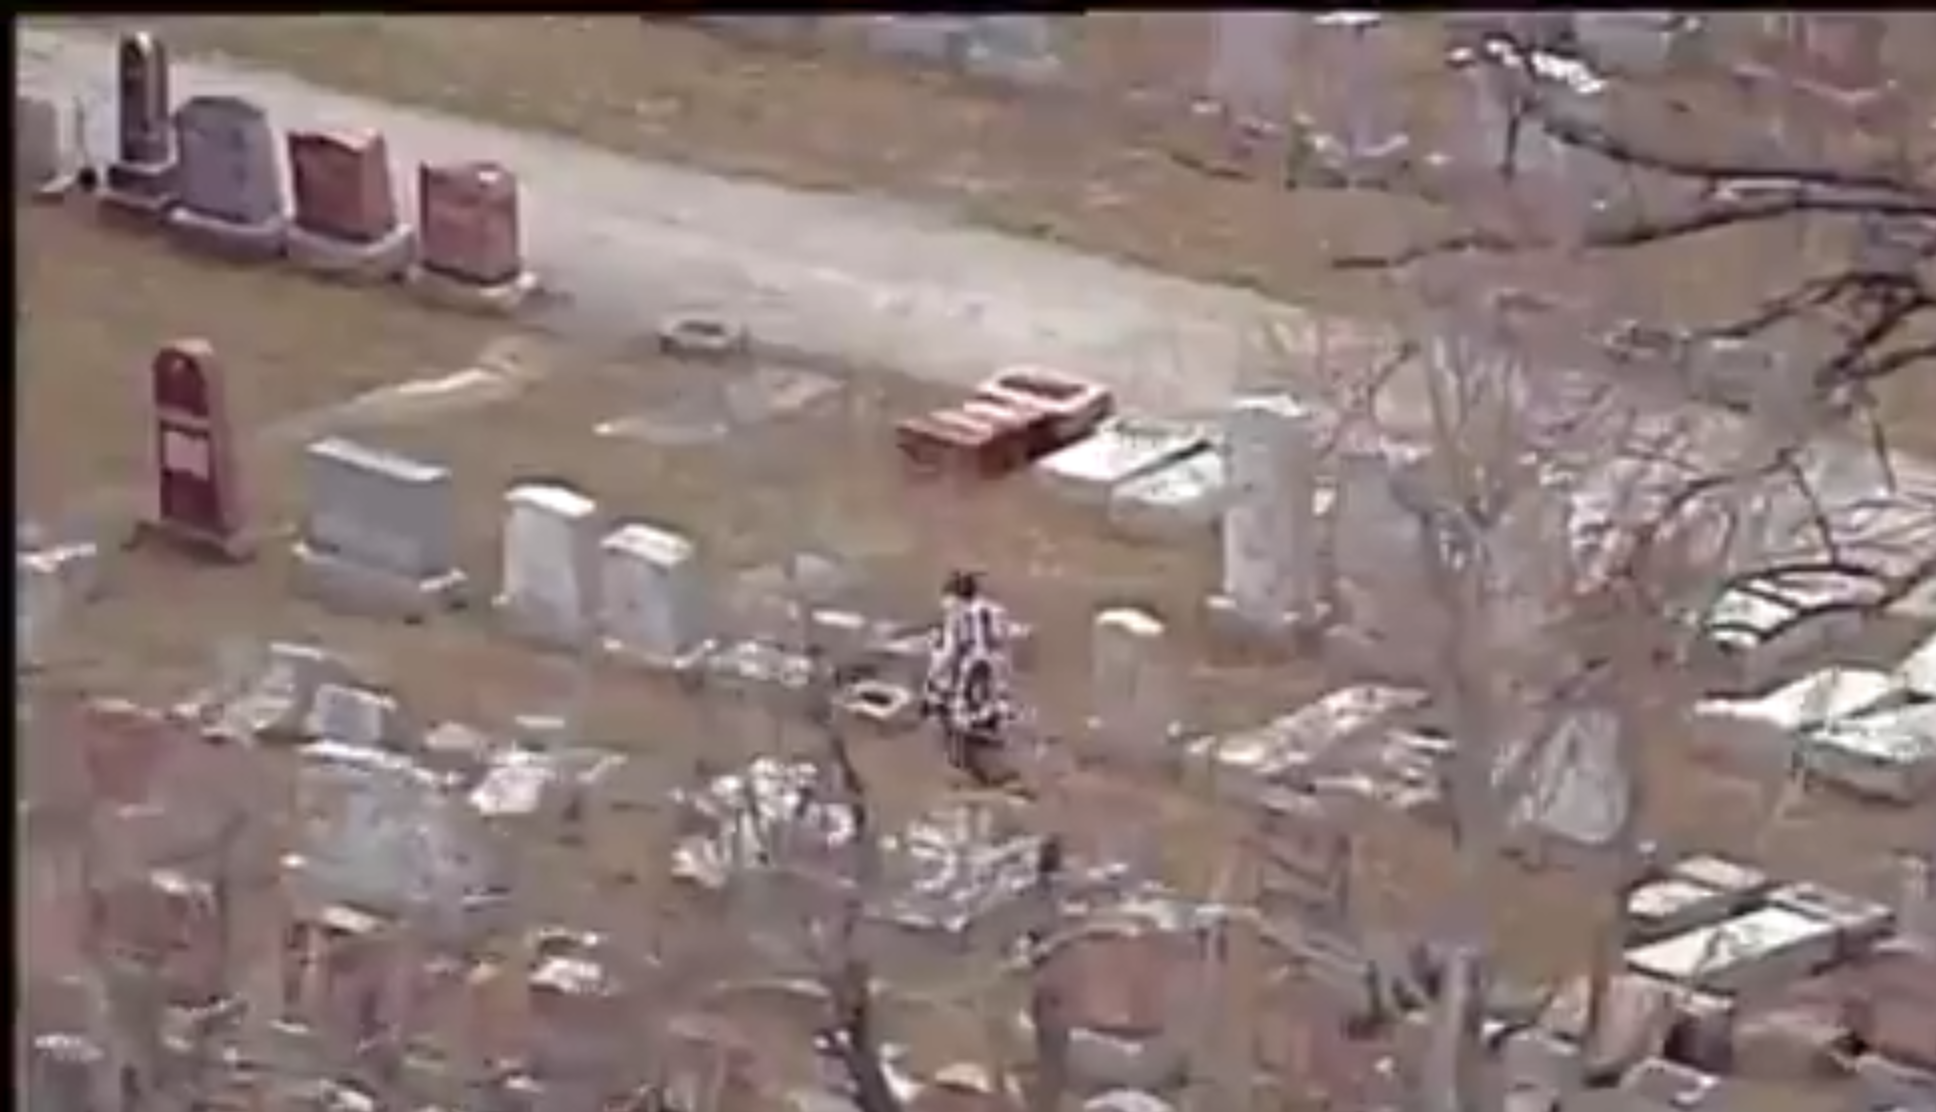 Amid mounting bomb threats against US Jewish centers, vandals hit Jewish cemetery